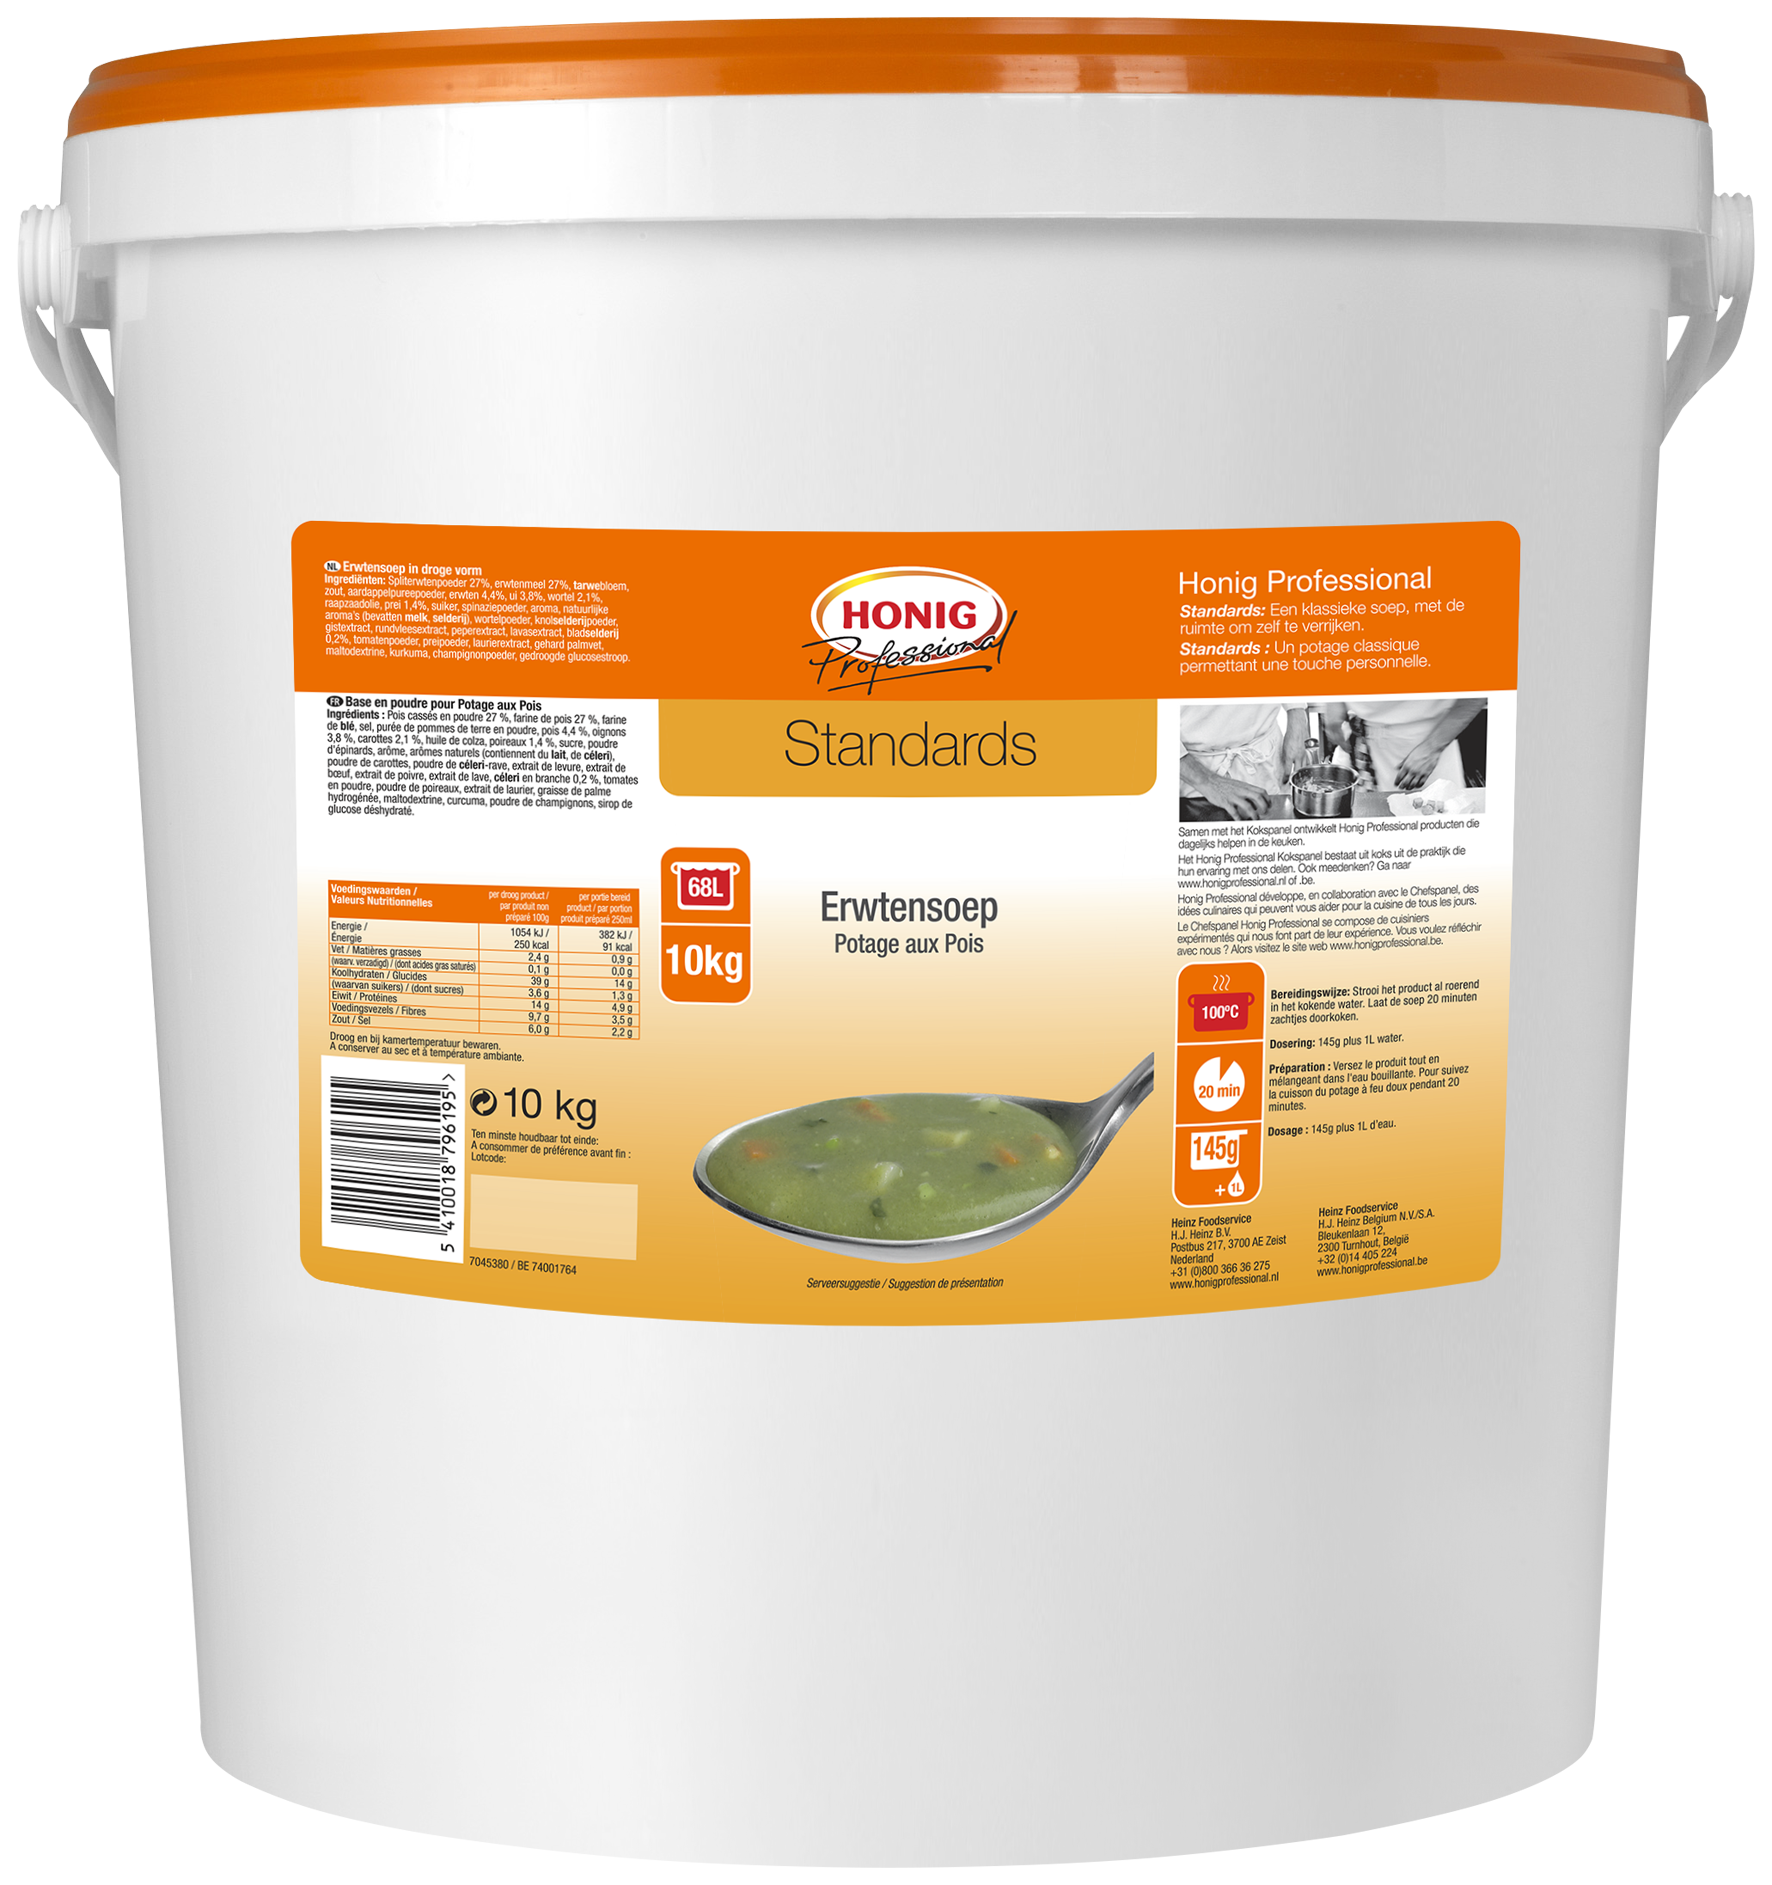 Honig For Professional Potage Aux Pois 10L image